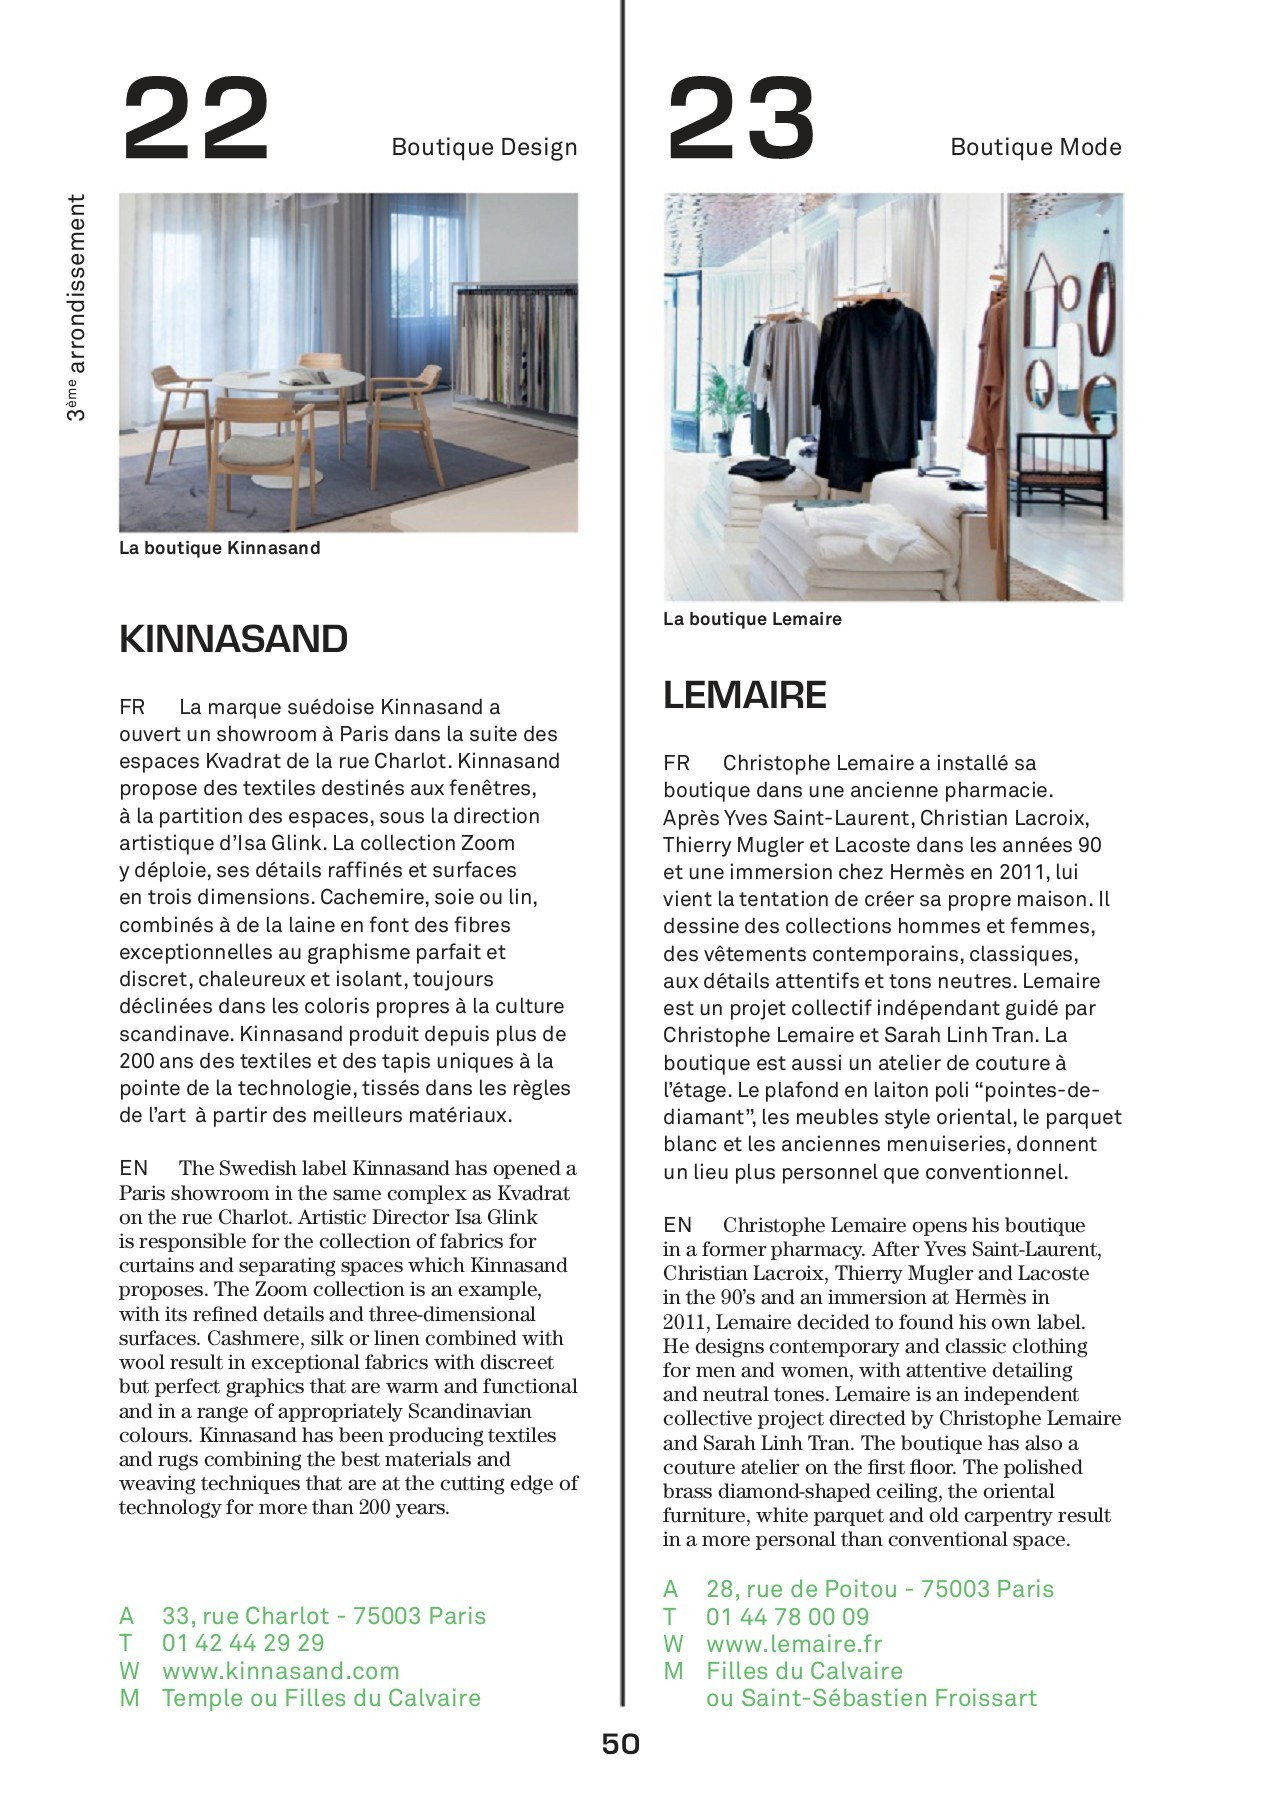 Range Parapluie Maison Du Monde 2019-04-01 intramuros-paris design guide-flip book pages 51